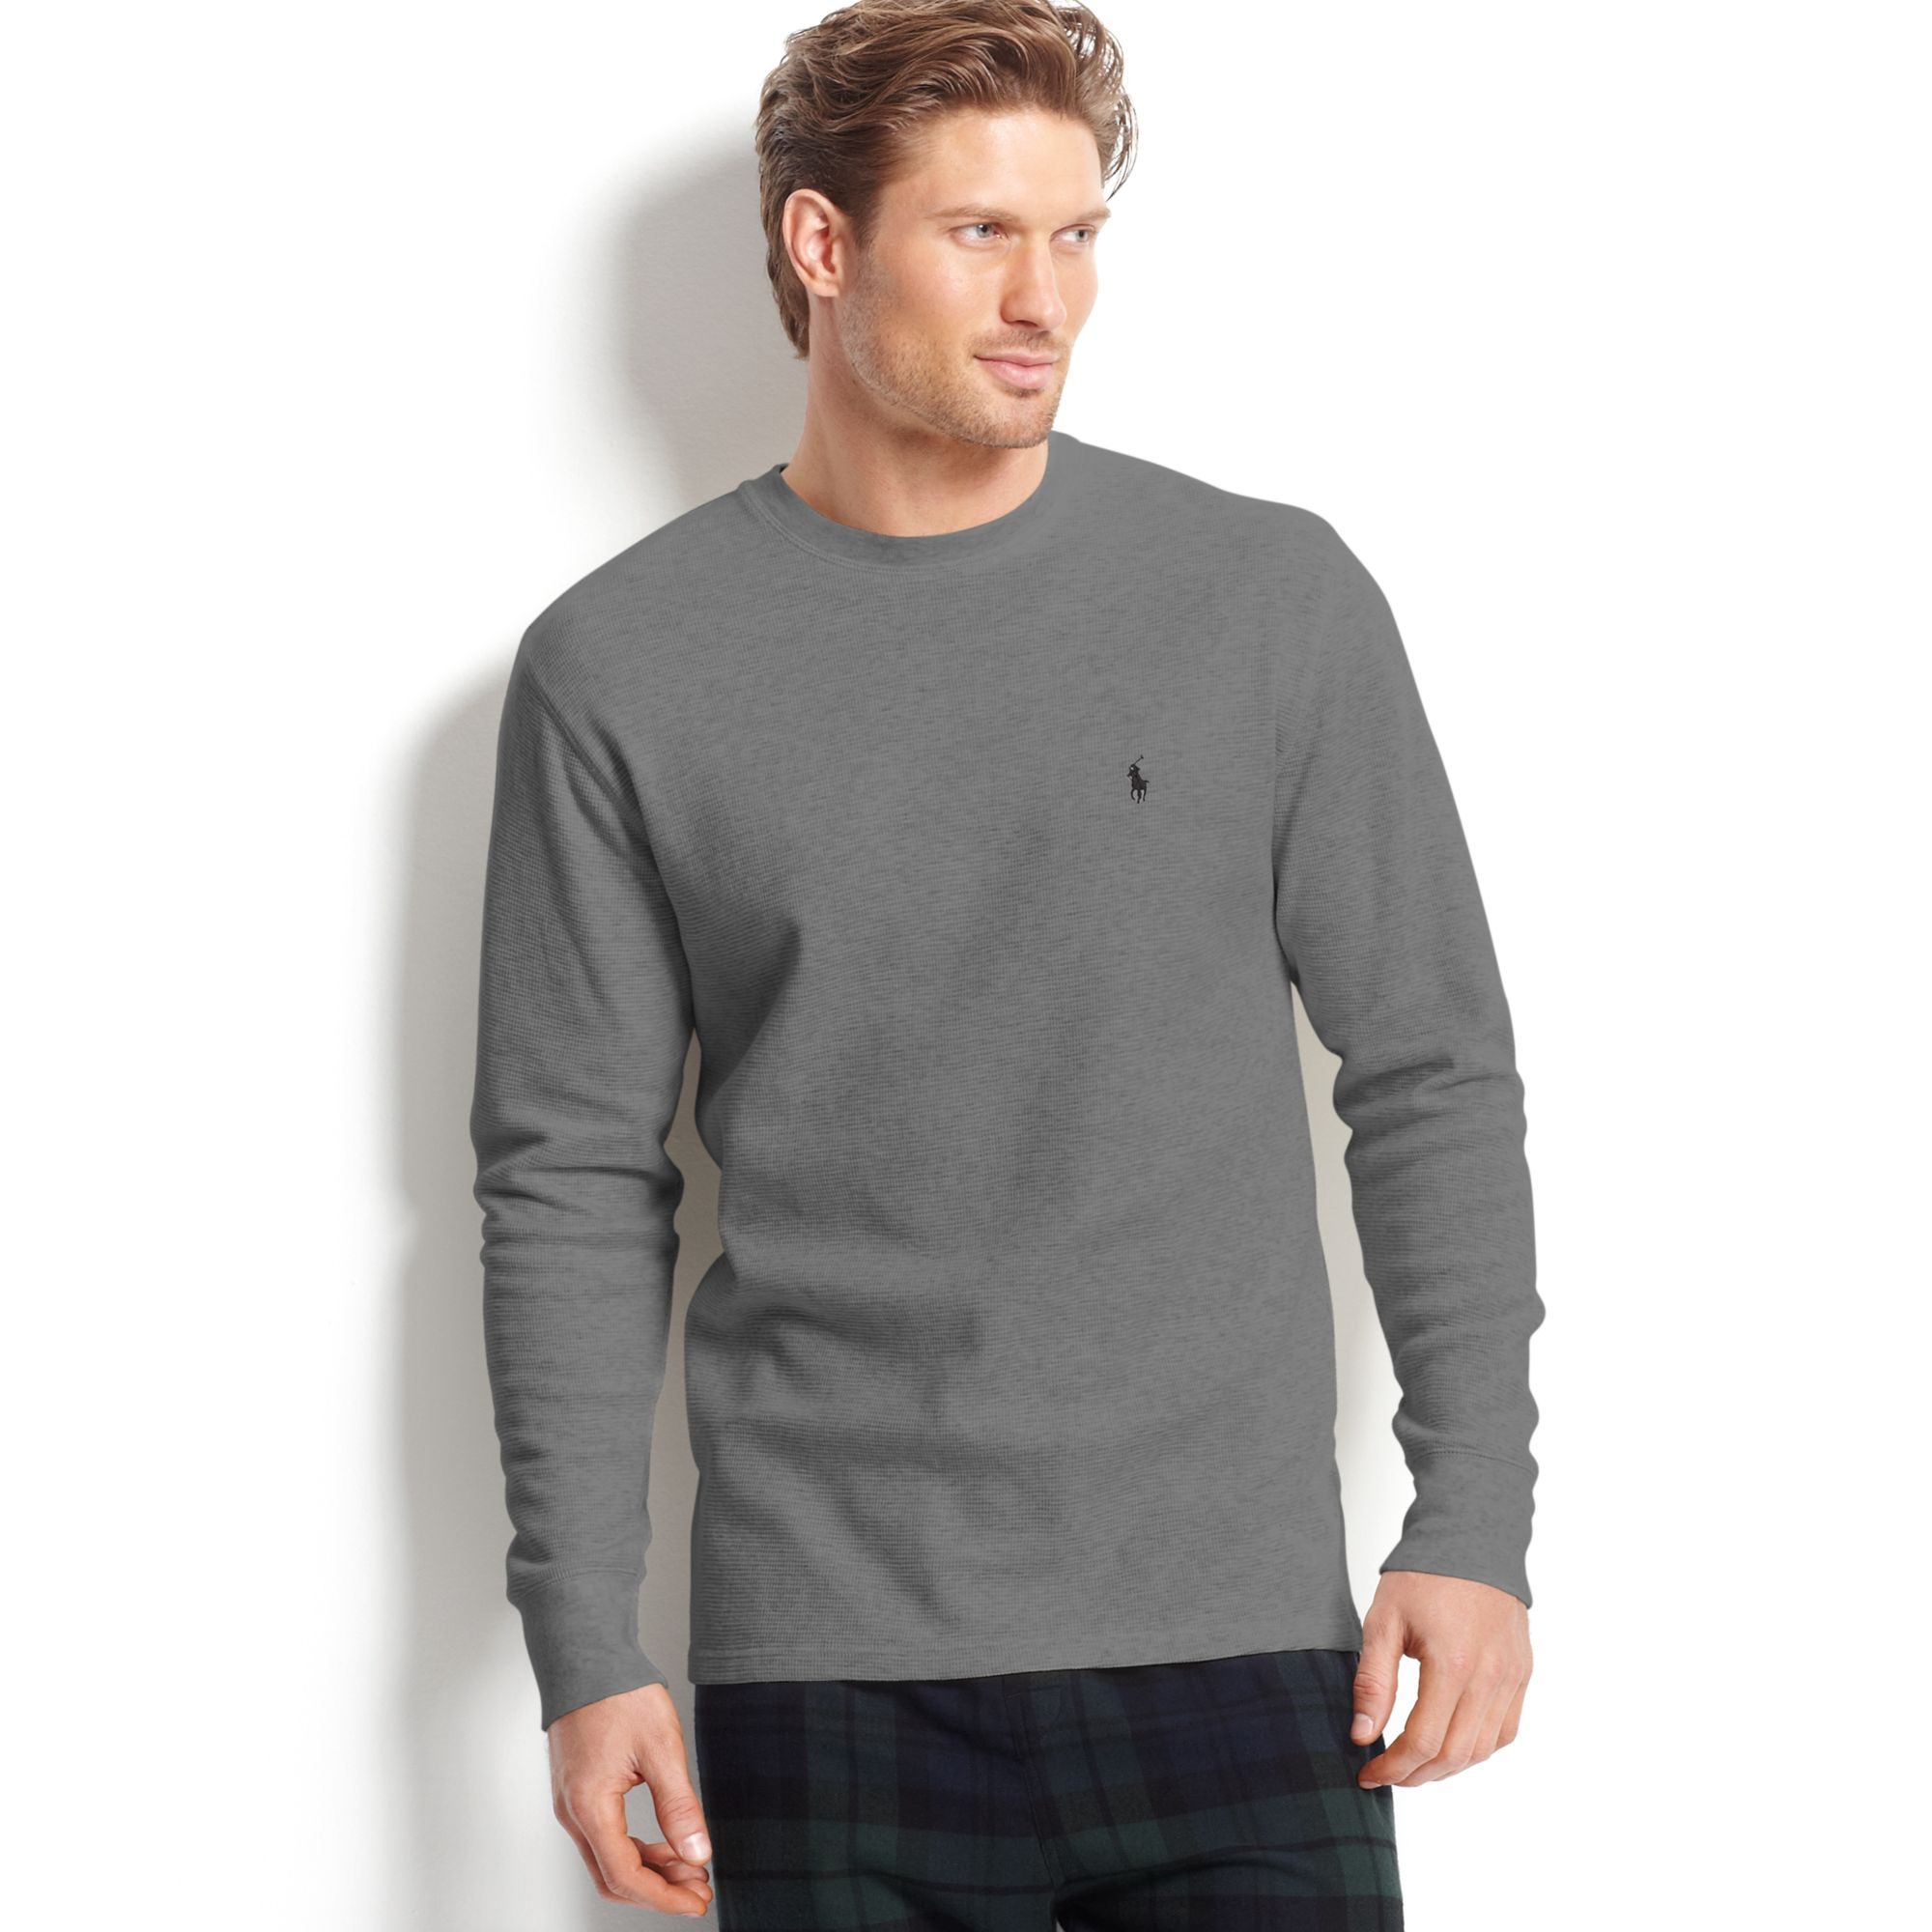 9fd34a542 Ralph Lauren Long Sleeve Crew Neck Waffle Knit Thermal Tshirt in ...